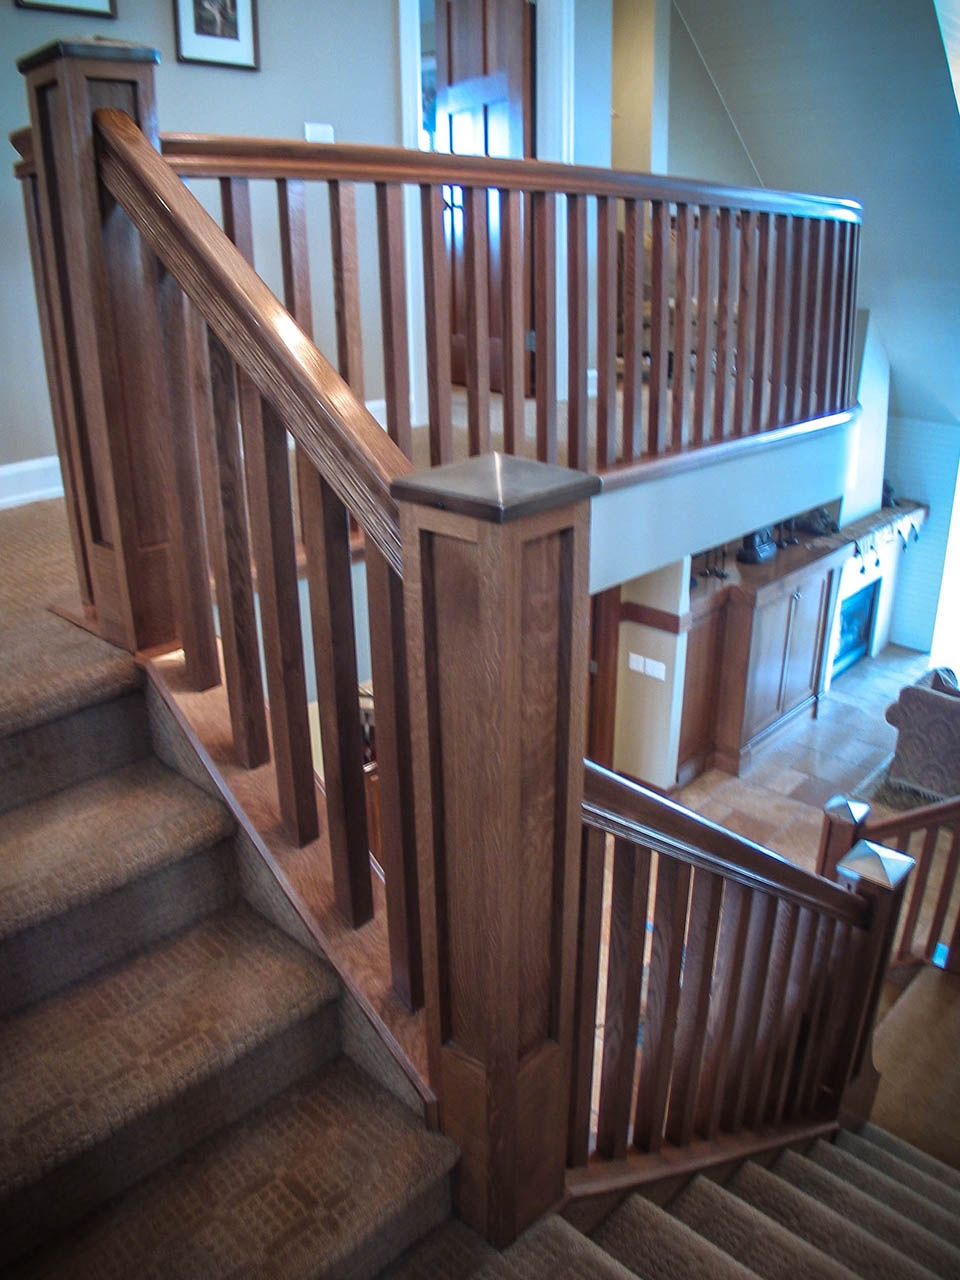 Mission Style Staircase Southern Staircase Artistic Stairs   Craftsman Stair Railing Designs   Homemade   Simple 2Nd Floor Railing Wood Stairs Iron Railing Design   Entryway Stair   Plain Traditional Stair   Floor To Ceiling